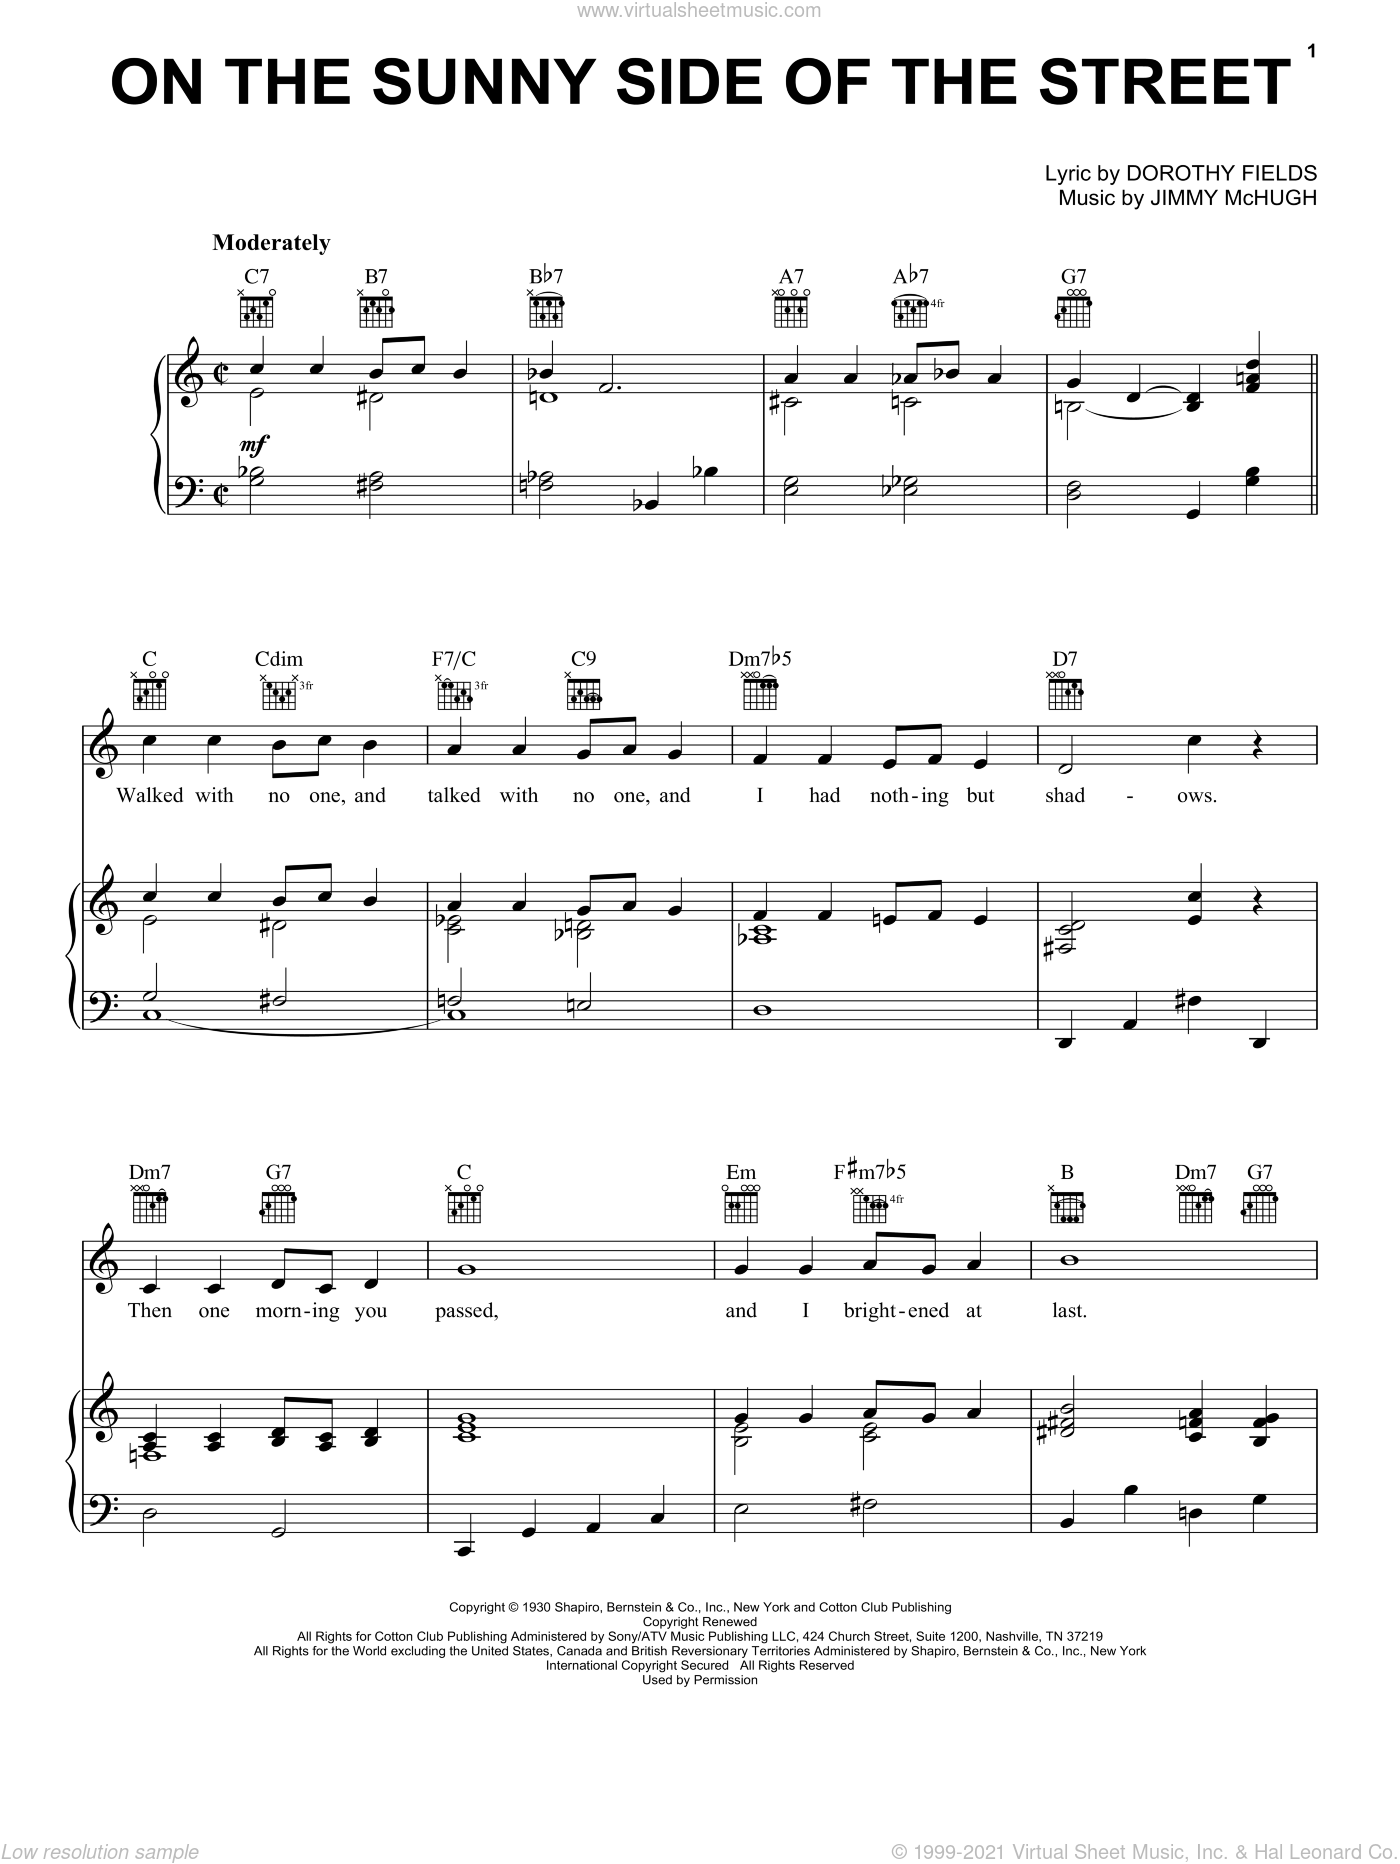 On The Sunny Side Of The Street sheet music for voice, piano or guitar by Dorothy Fields, Frank Sinatra, Louis Armstrong and Jimmy McHugh, intermediate. Score Image Preview.